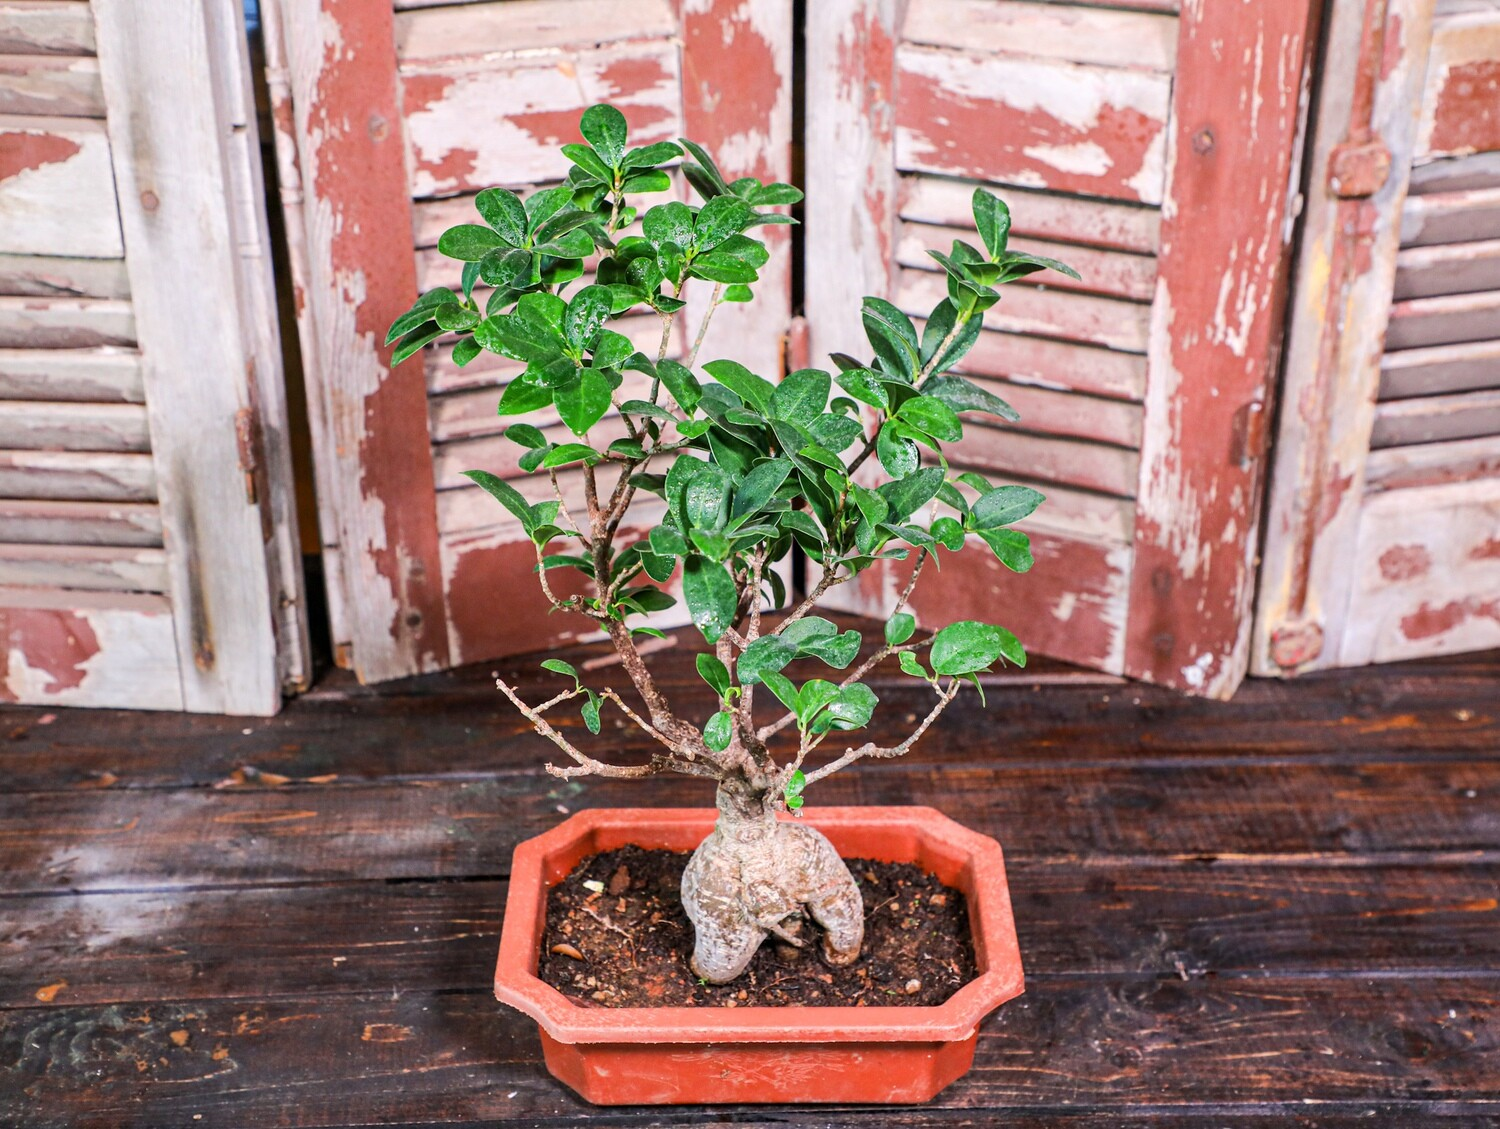 Bonsai ficus (Plant) - Nature by Marc Beyrouthy